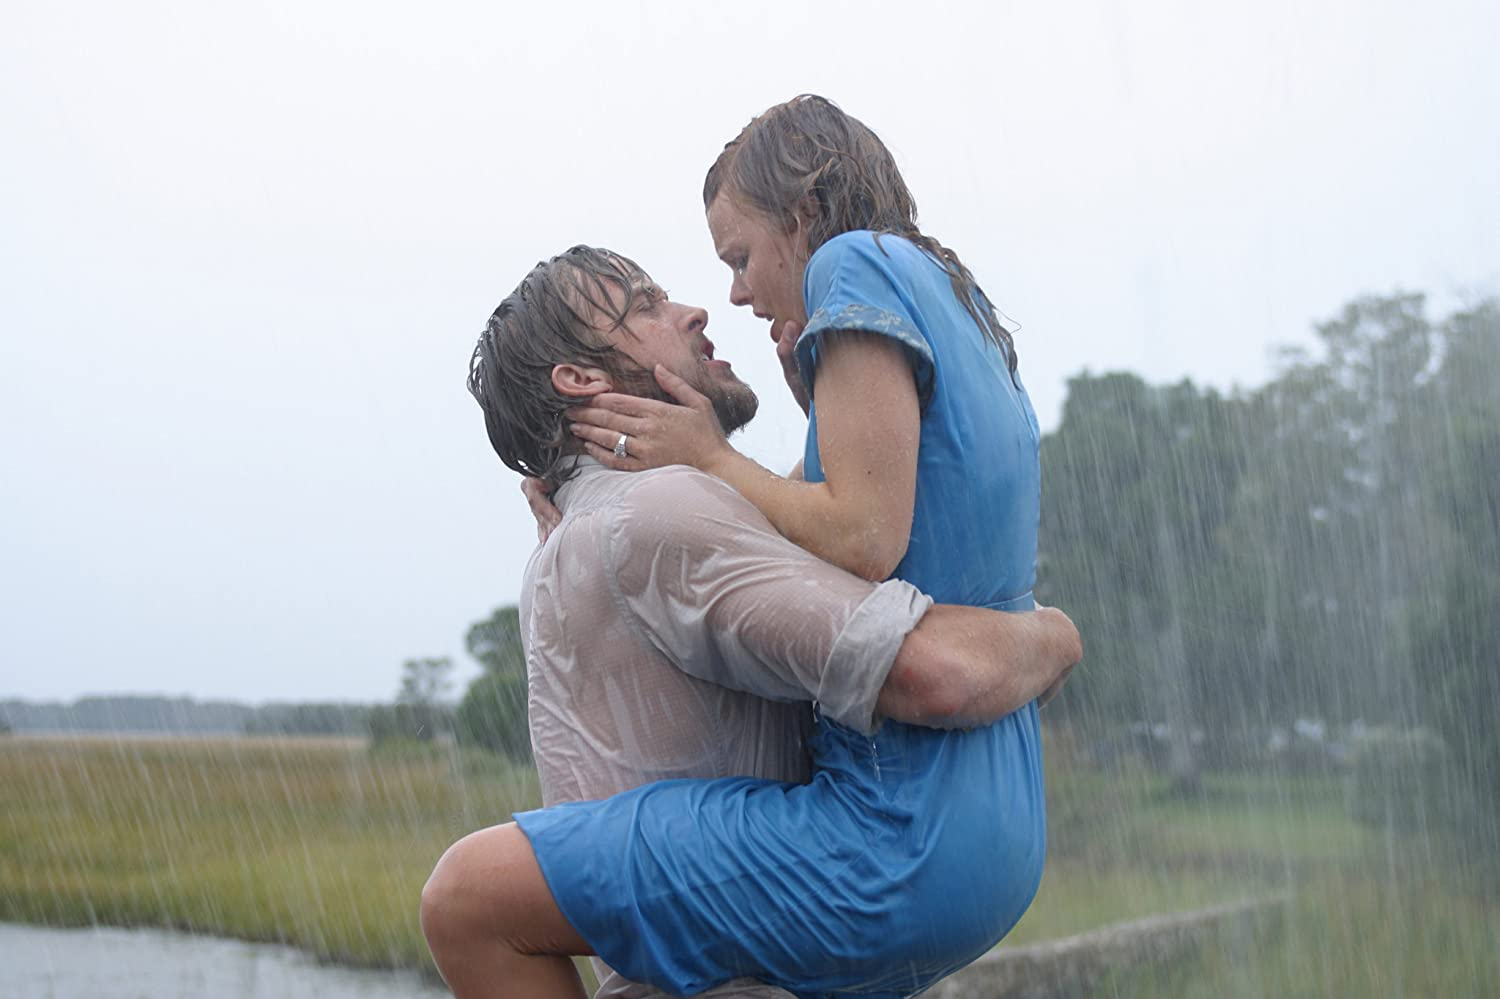 Ryan Gosling and Rachel McAdams / New Line Cinema. © 2004. All rights reserved.